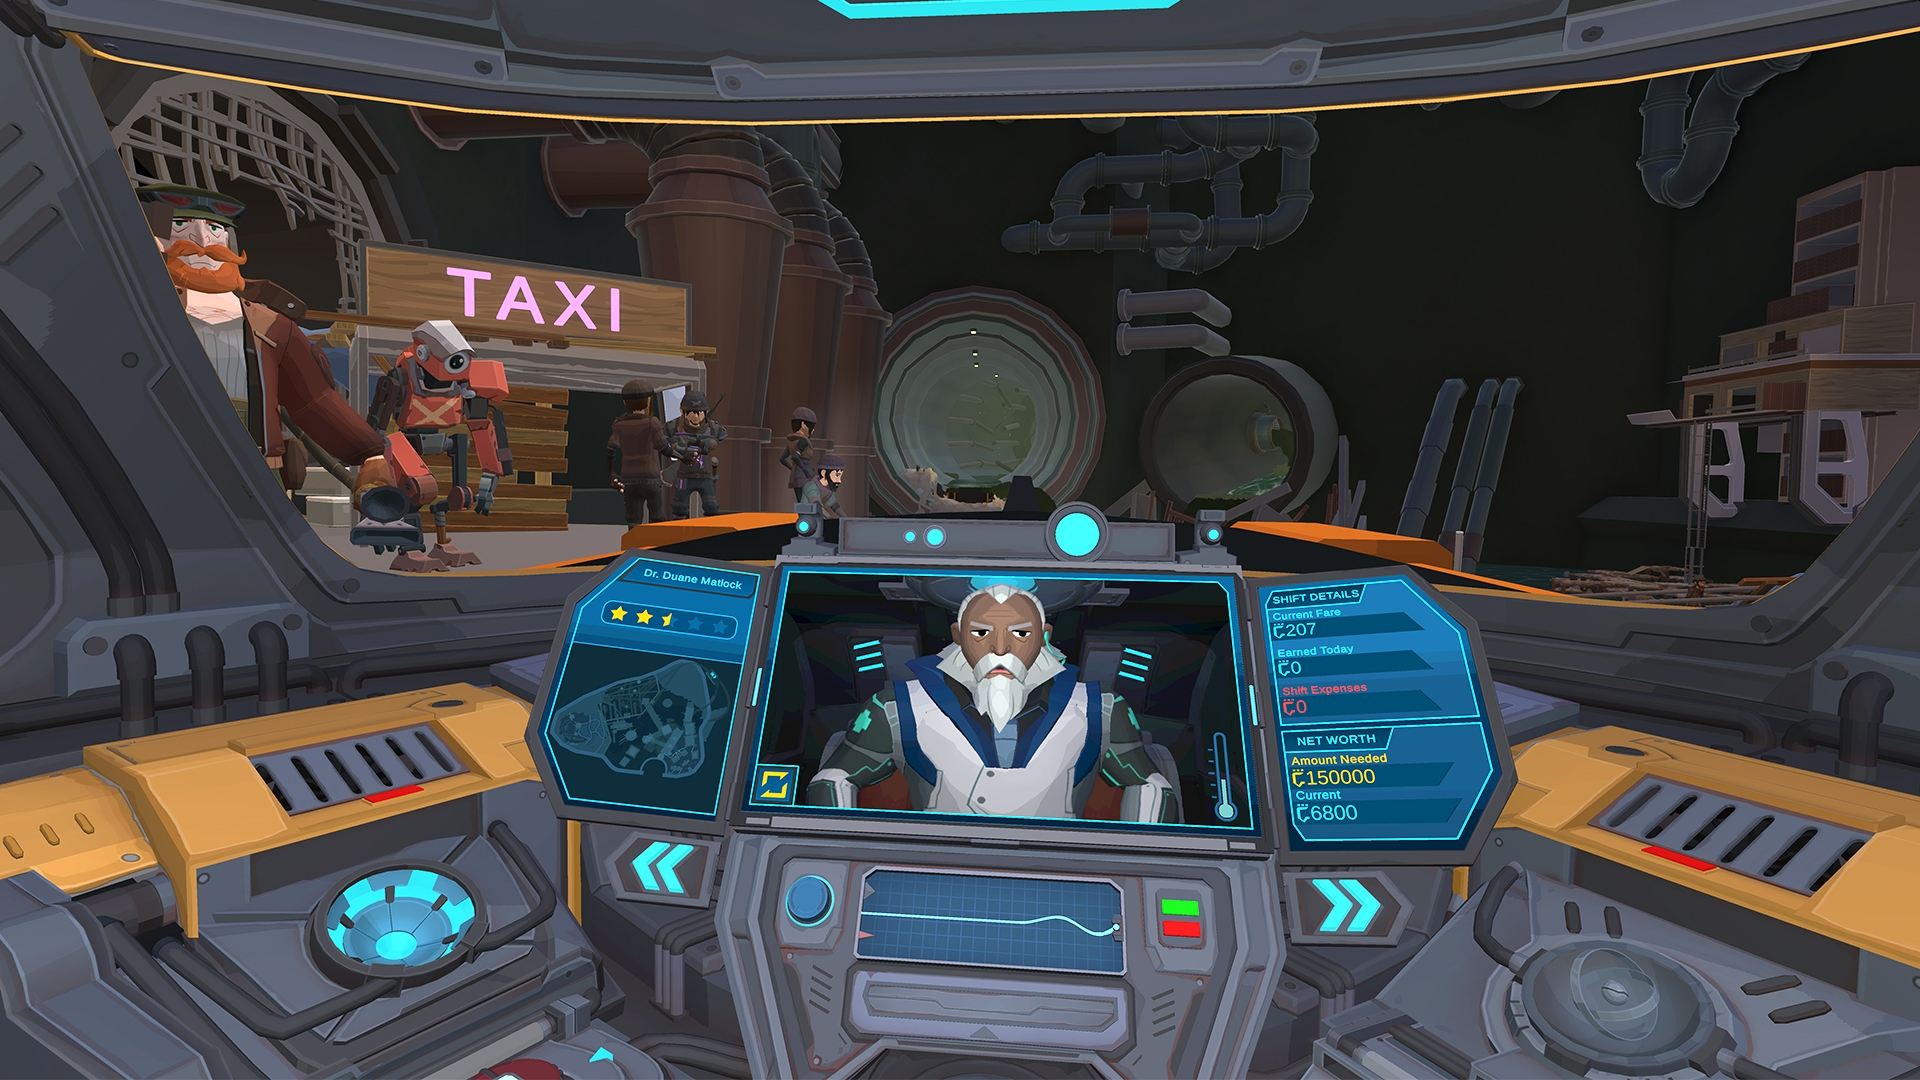 Experience The World As The Last Human Taxi Driver In An Automated Future In Q3 2020